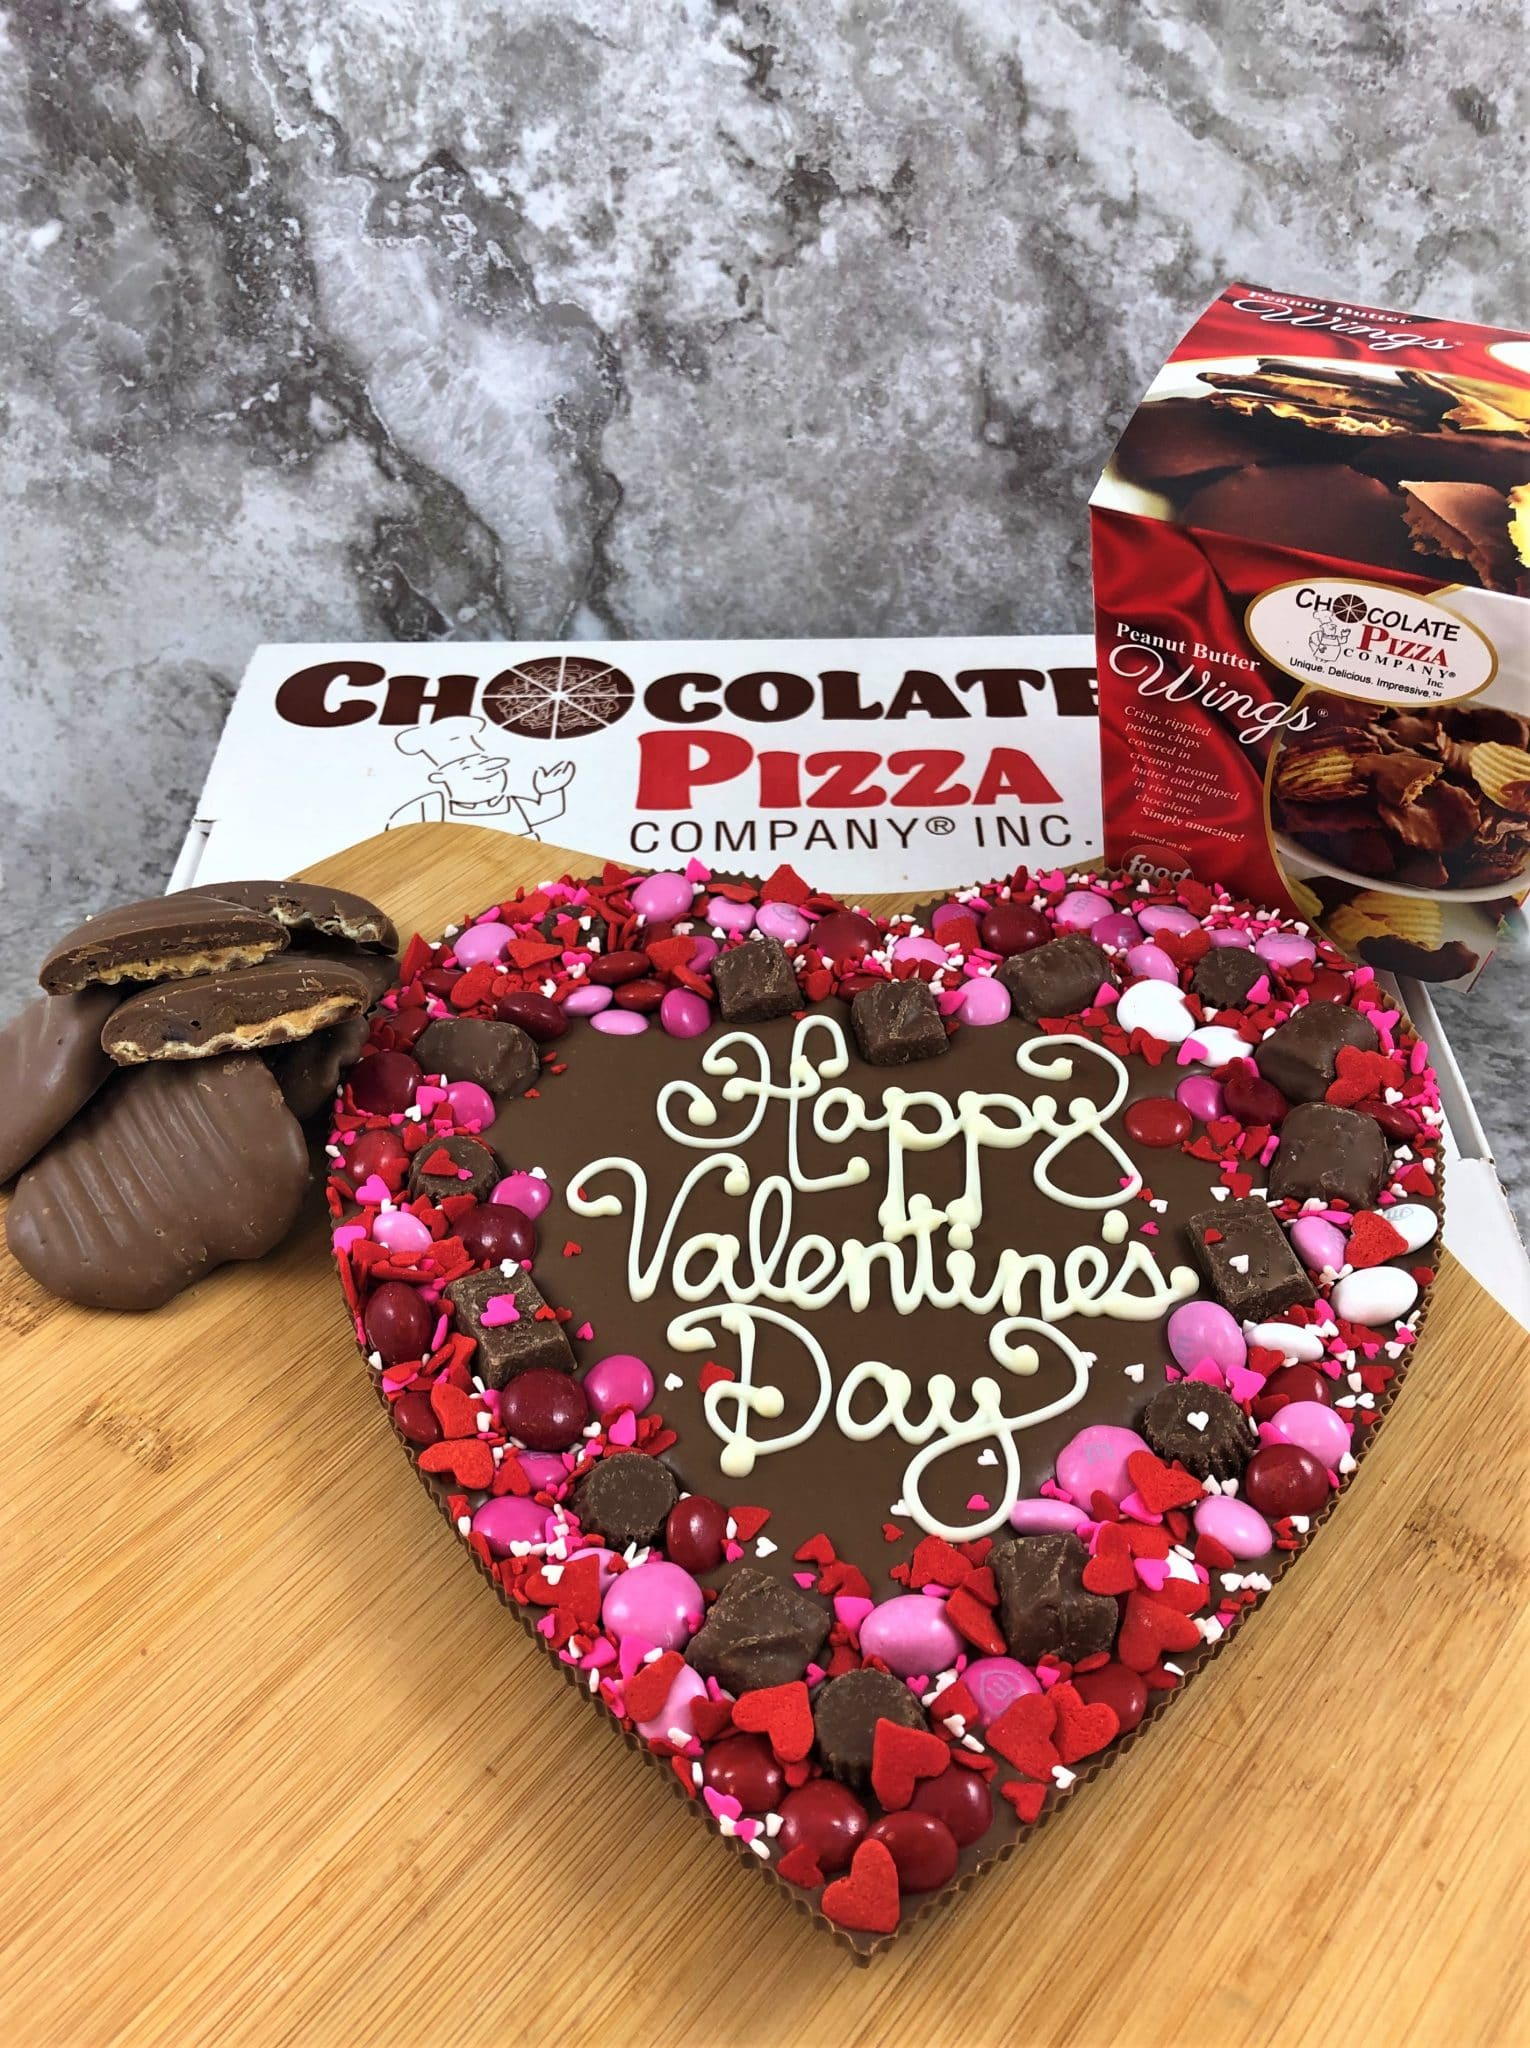 Chocolate pizza and peanut butter wings from the Chocolate Pizza Company